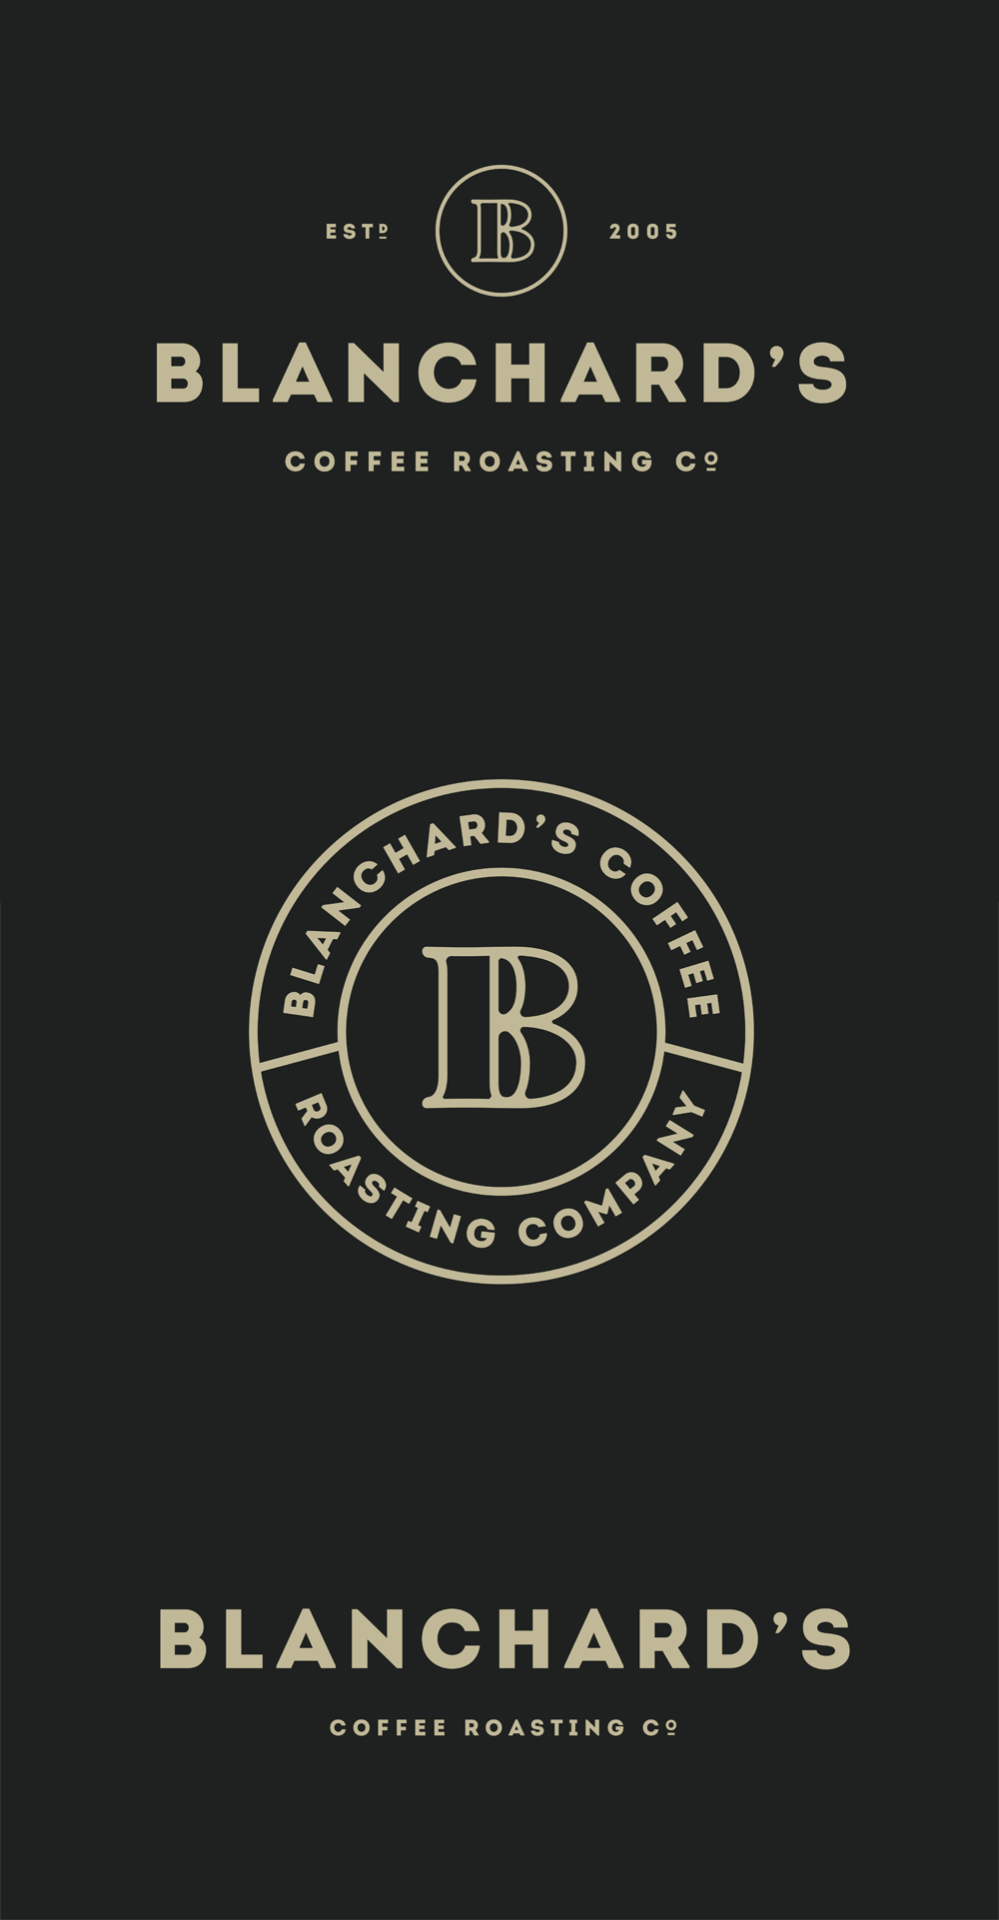 Blanchard's Coffee Roasting Company redesign by Skirven